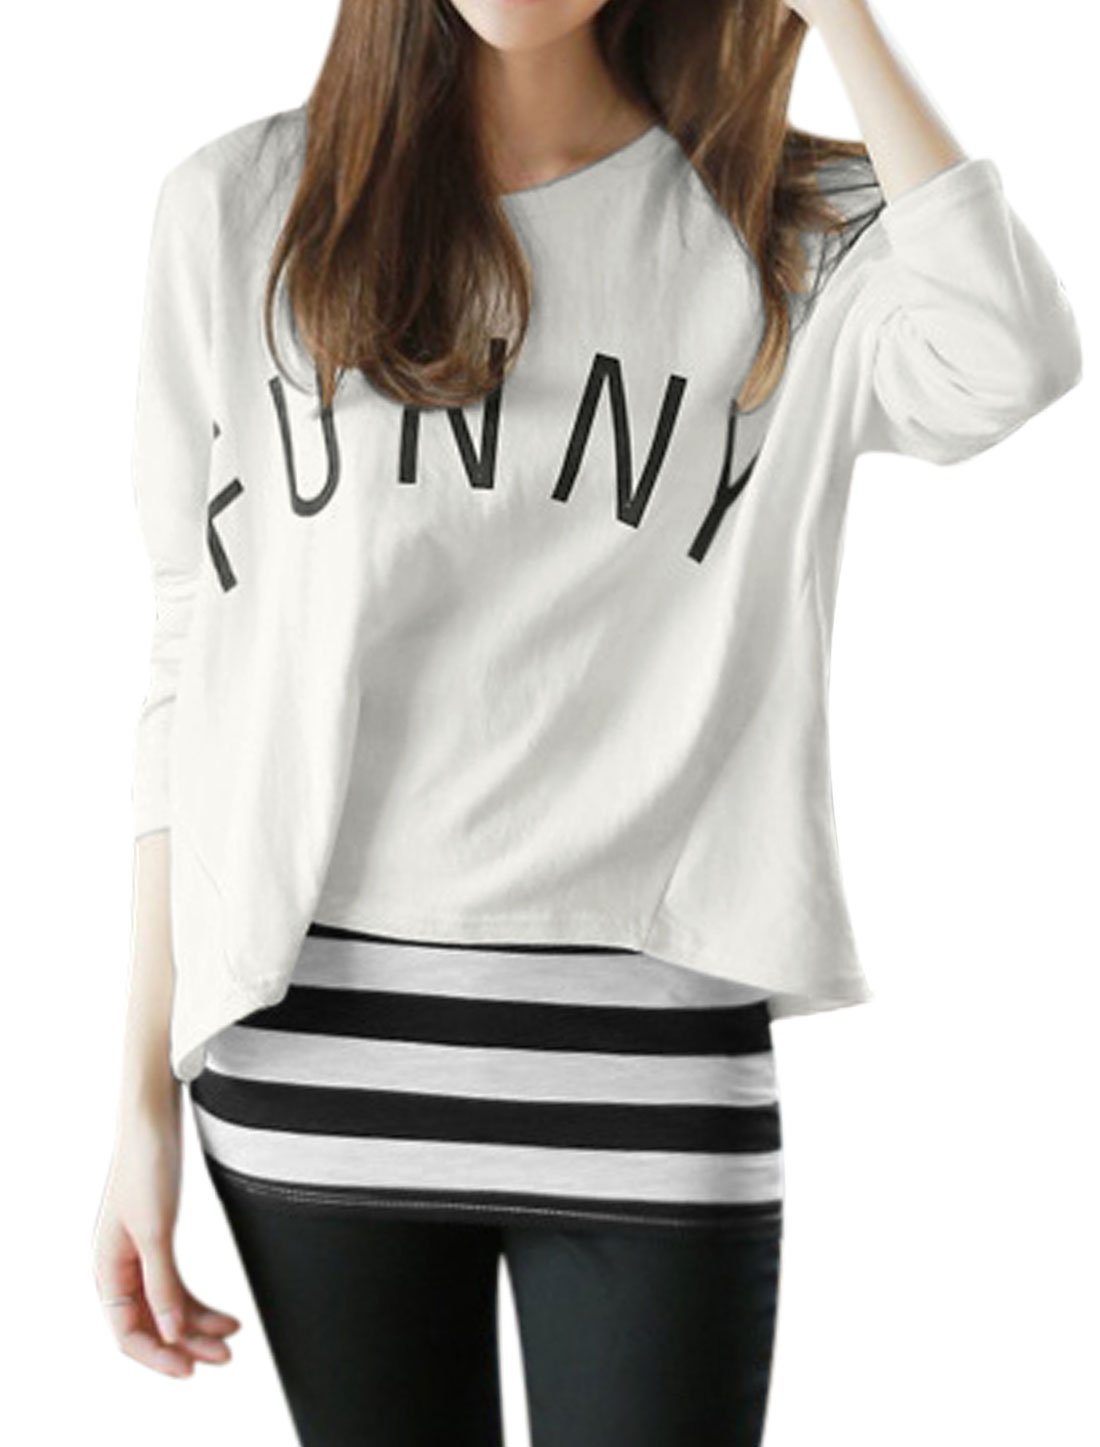 Lady Letters Prints Batwing Sleeve Beige Shirt w Stripes Tank Top Black White XS